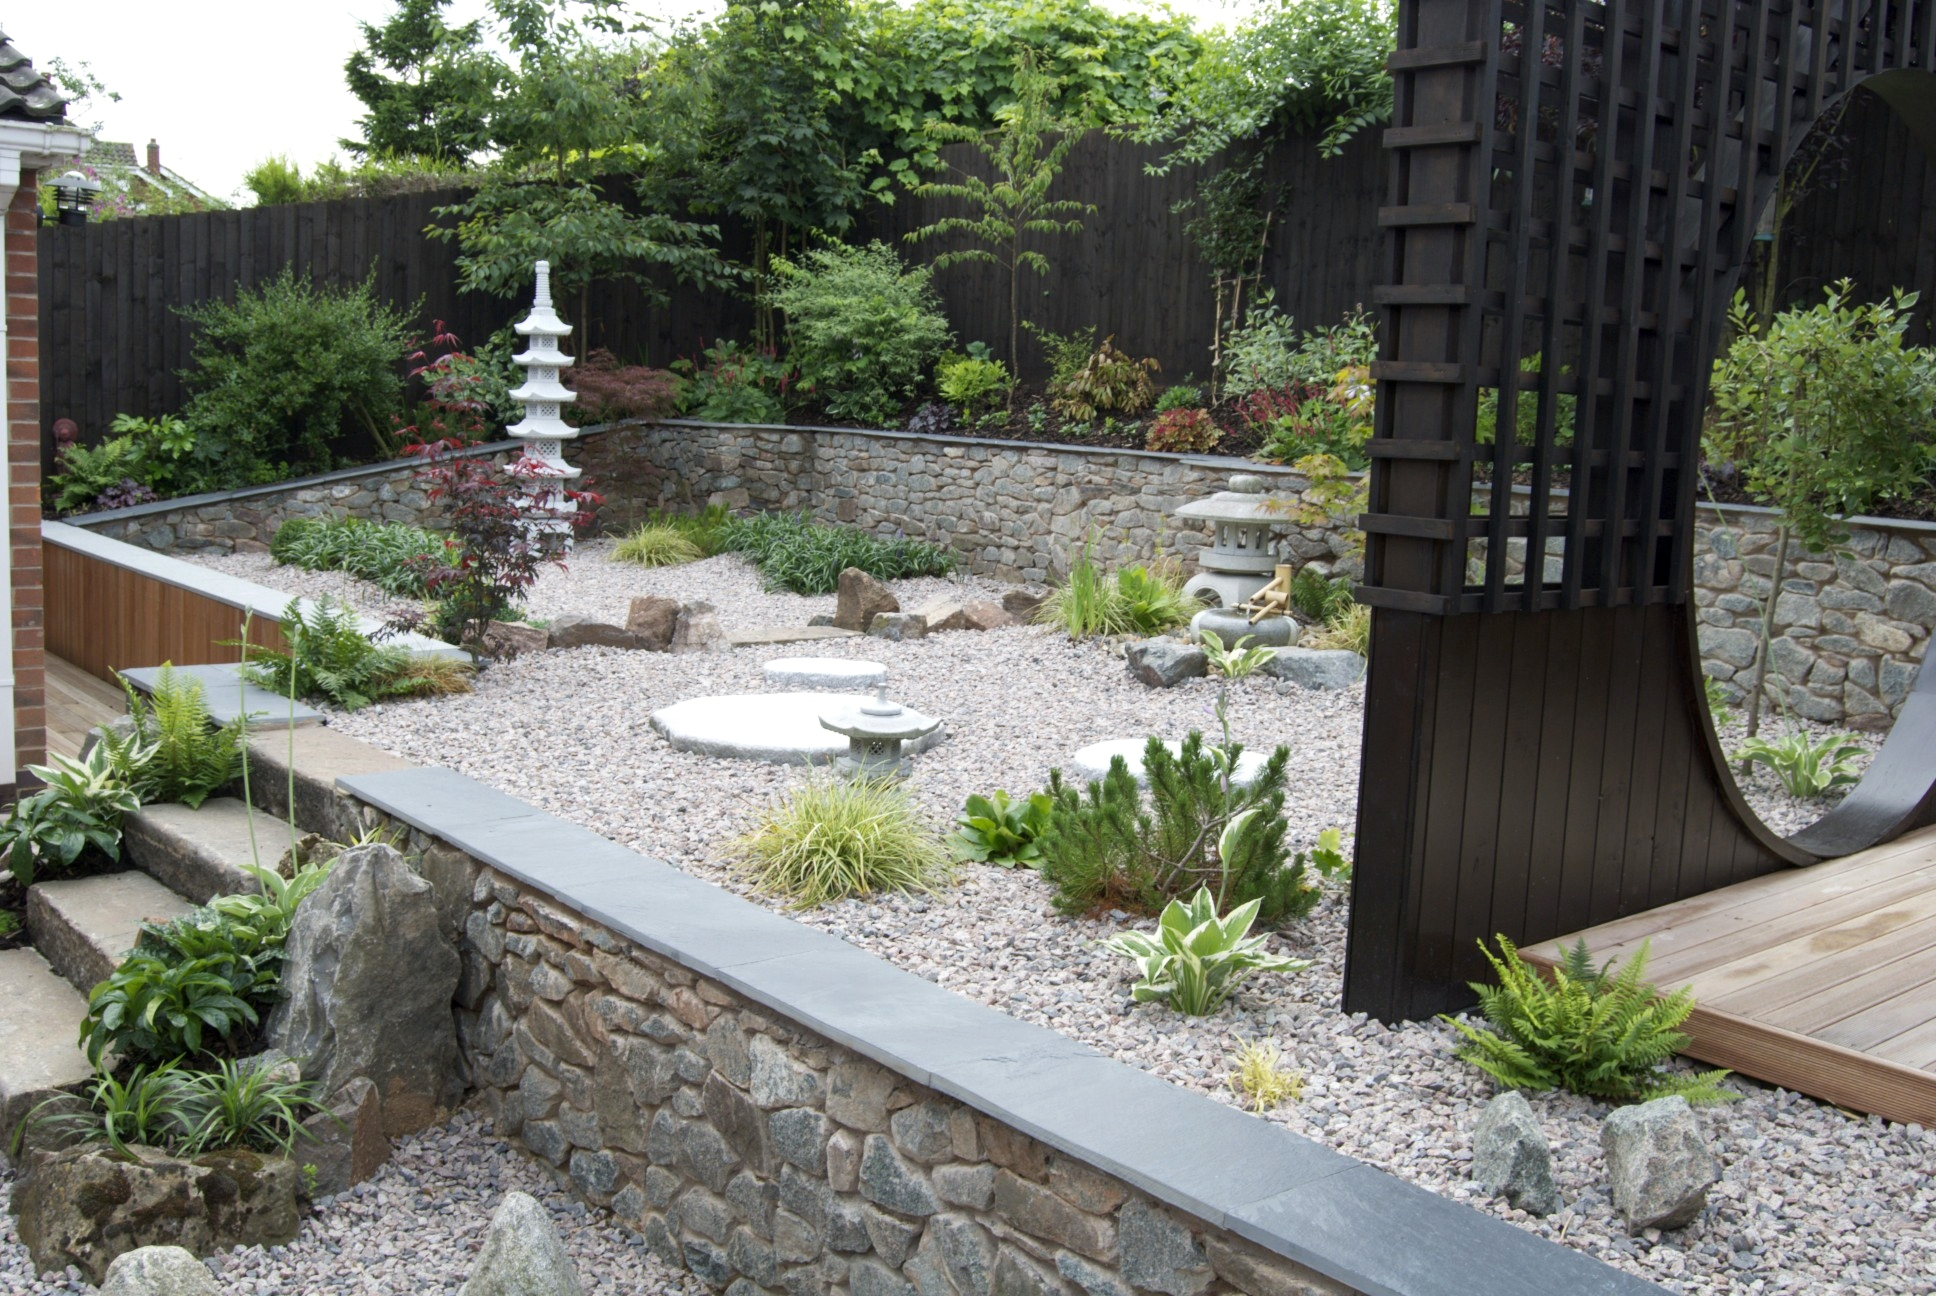 How To Build A Japanese Garden In A Small Space « Japanese Gardens regarding Zen Gardens For Small Spaces